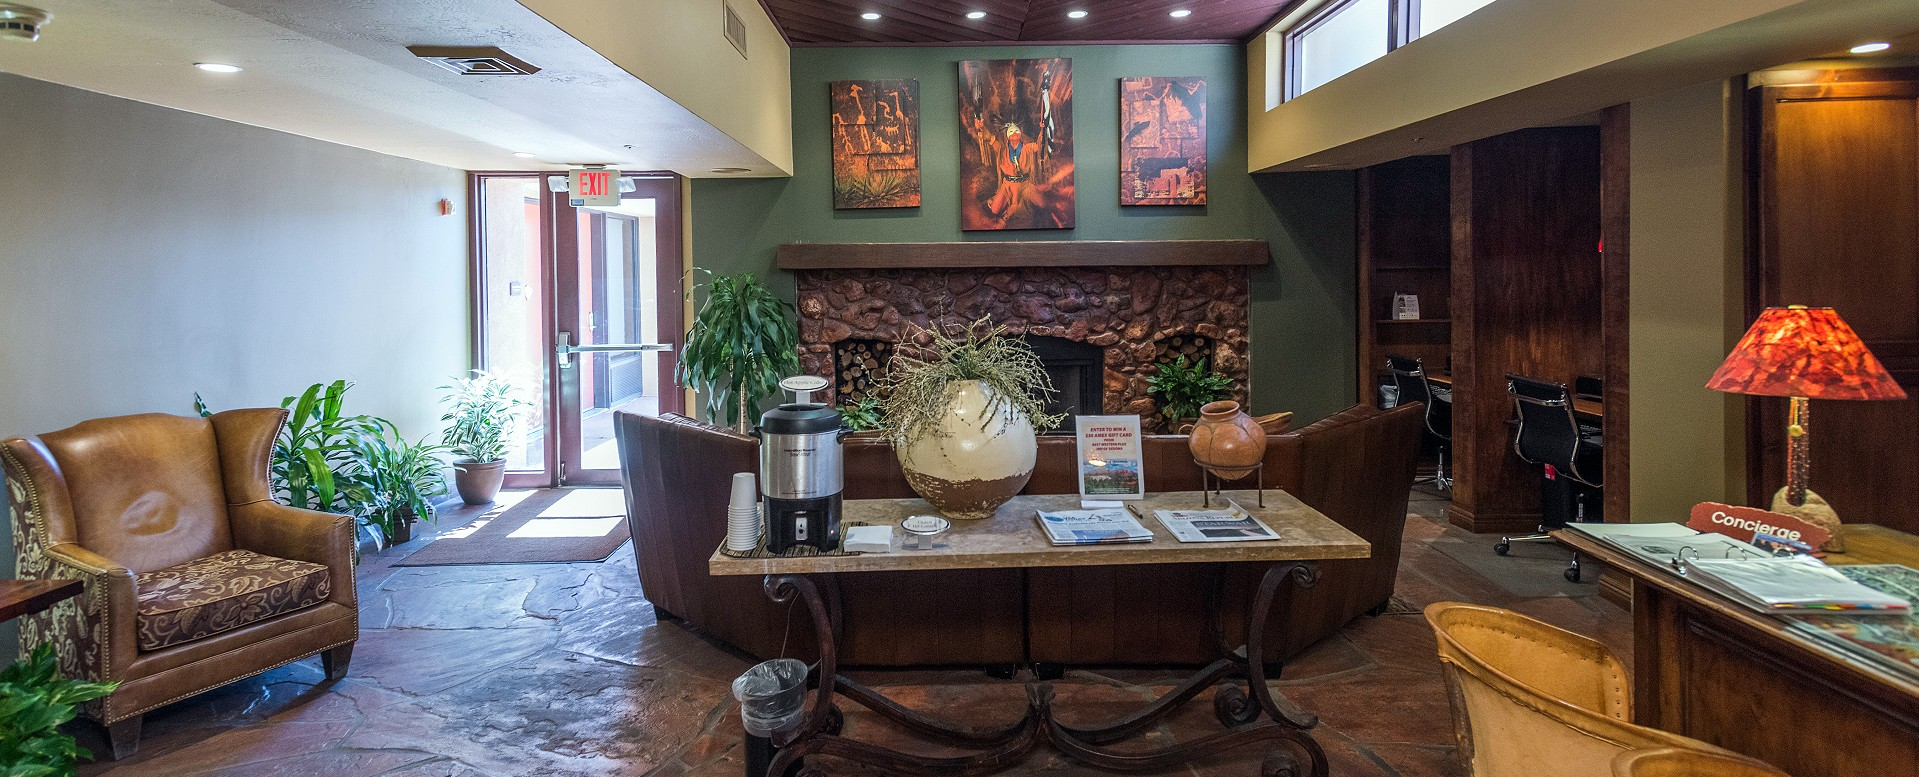 Best Western Plus Inn of Sedona-Lobby